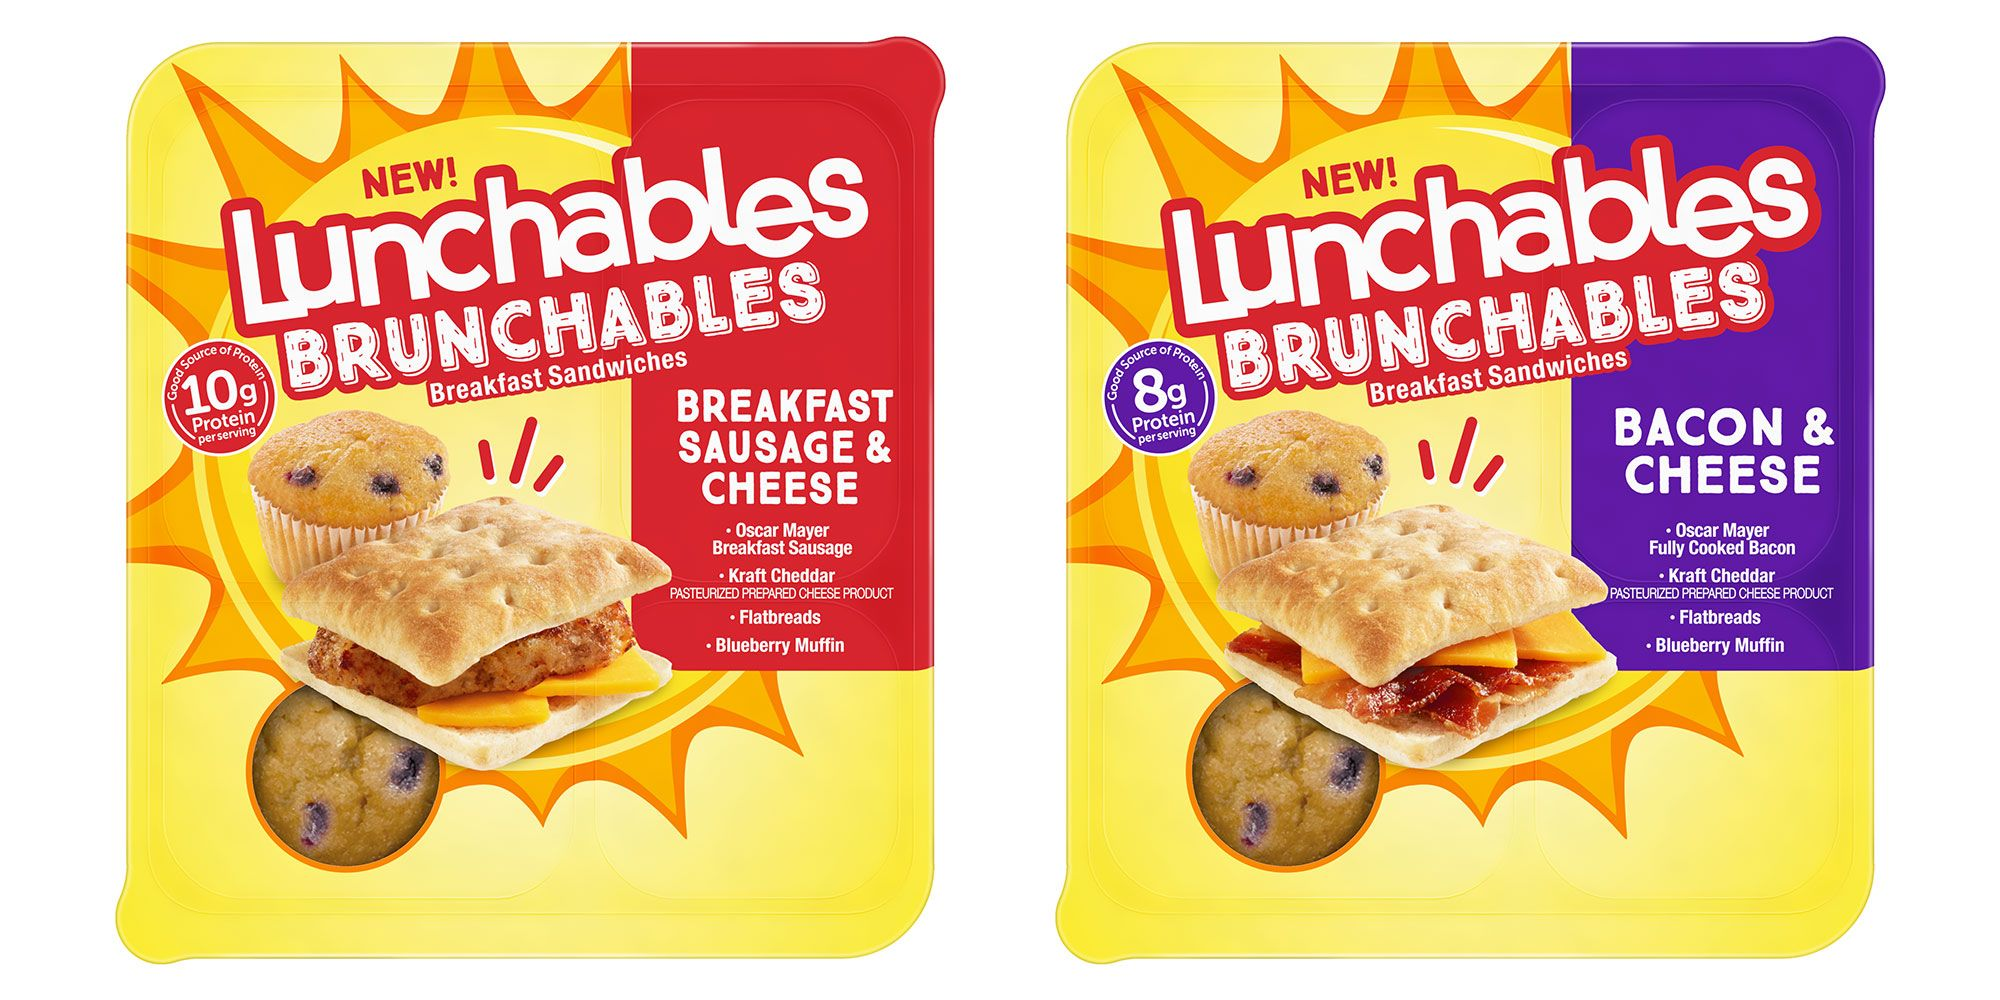 Lunchables Brunchables Are Coming So It's Time To Collectively Relive Our Childhood